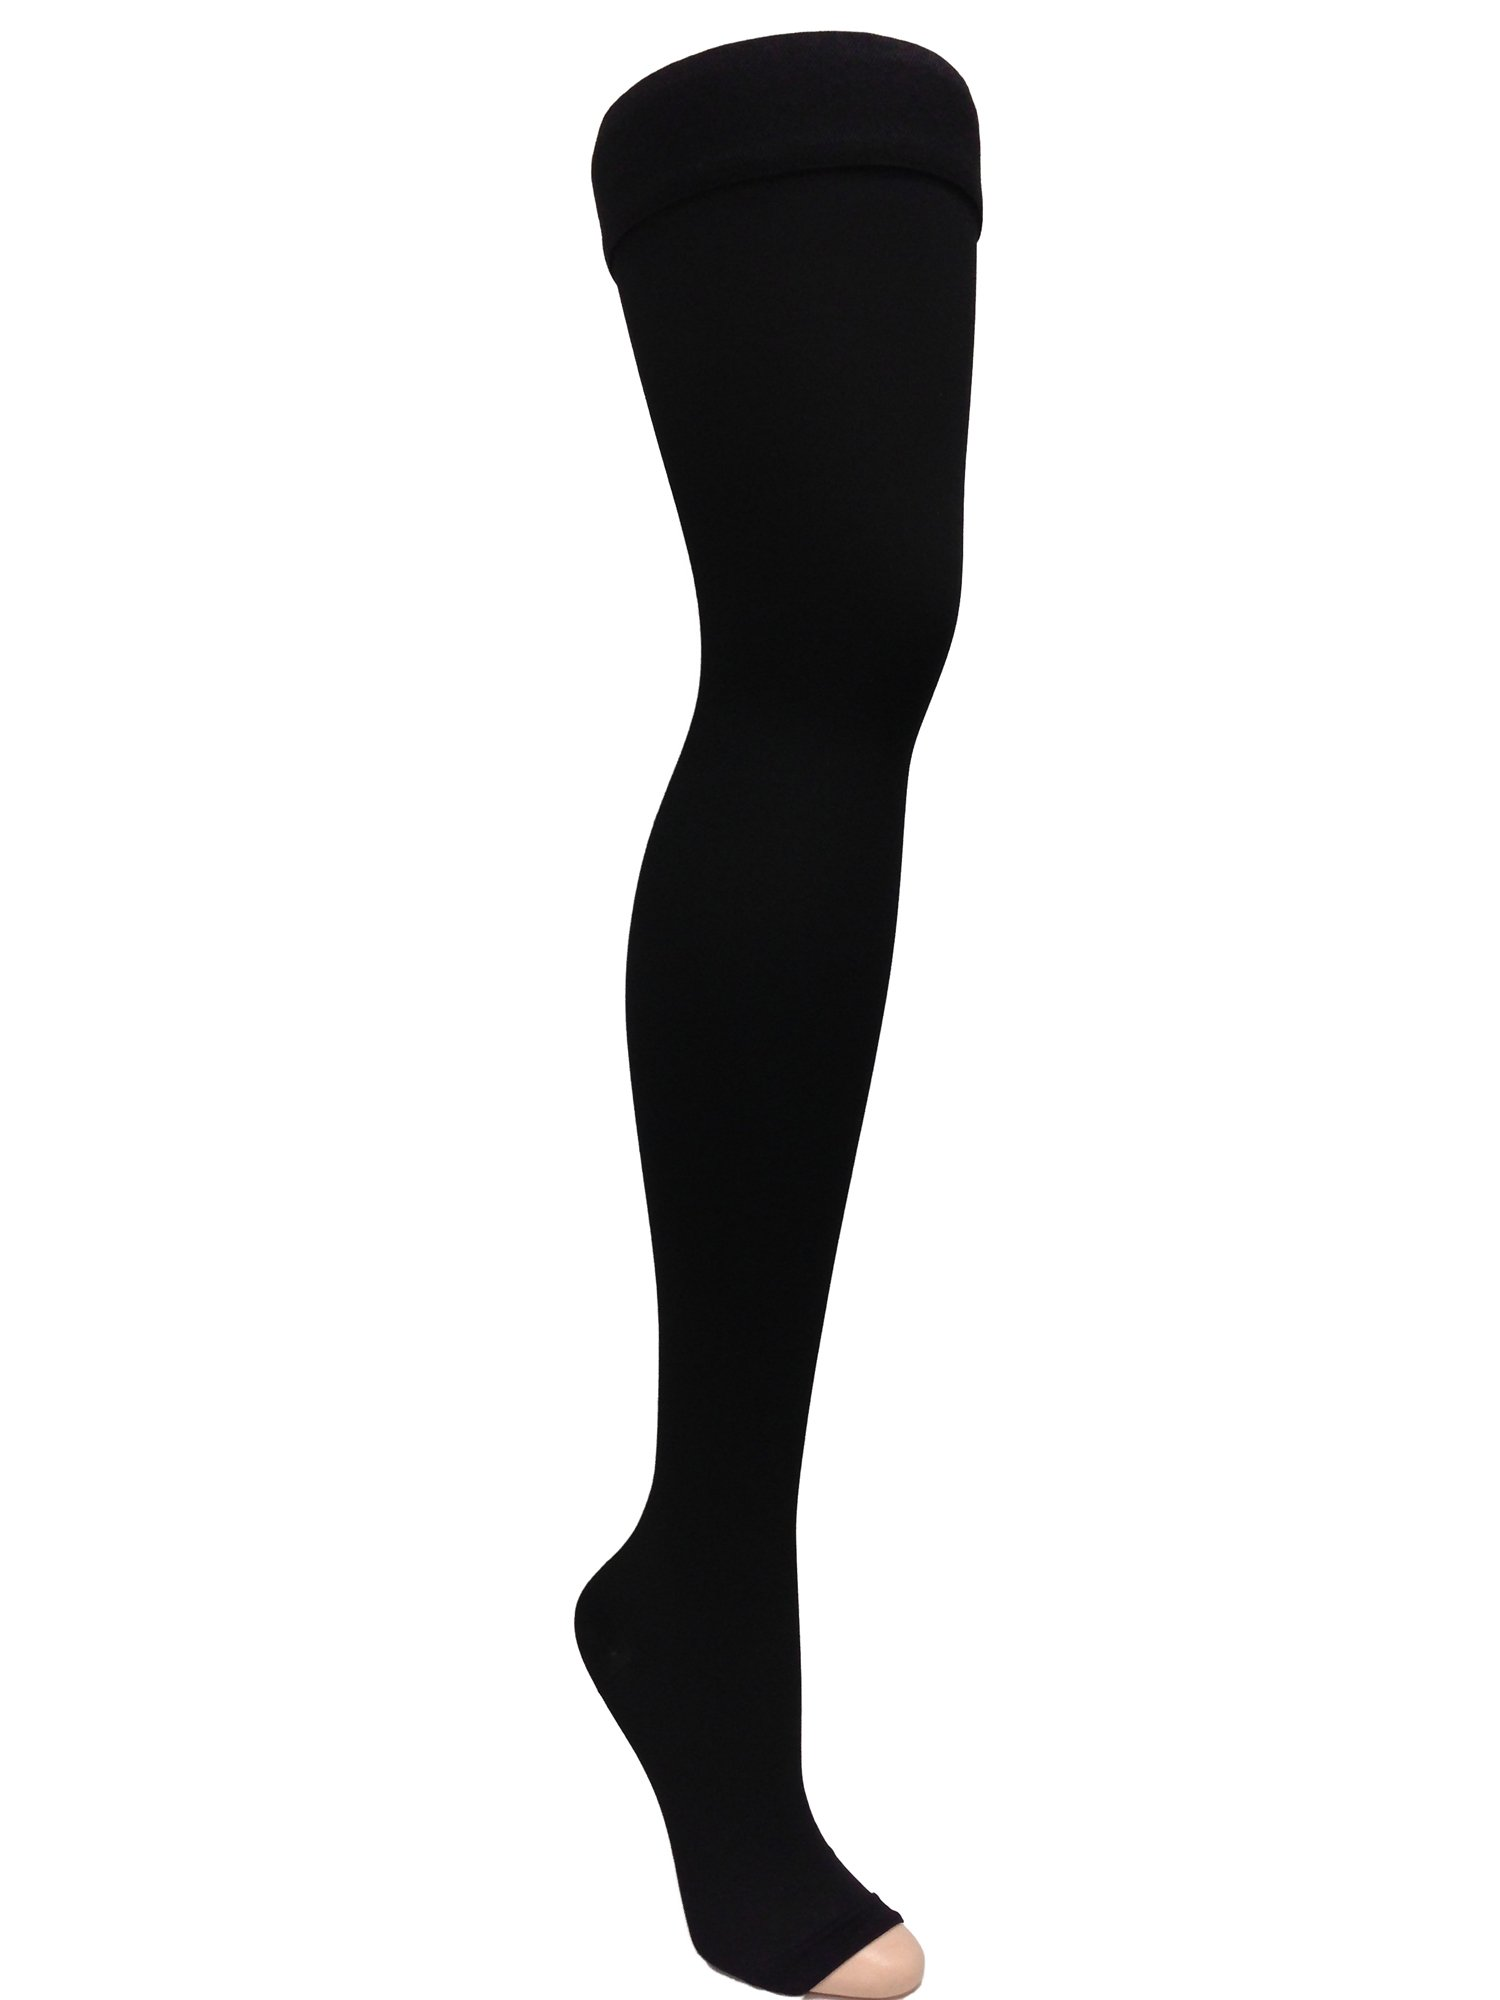 ITA-MED Open Toe Thigh Highs - Compression (25-35 mmHg): H-306(O)(3), Pack of 3, Small, Black